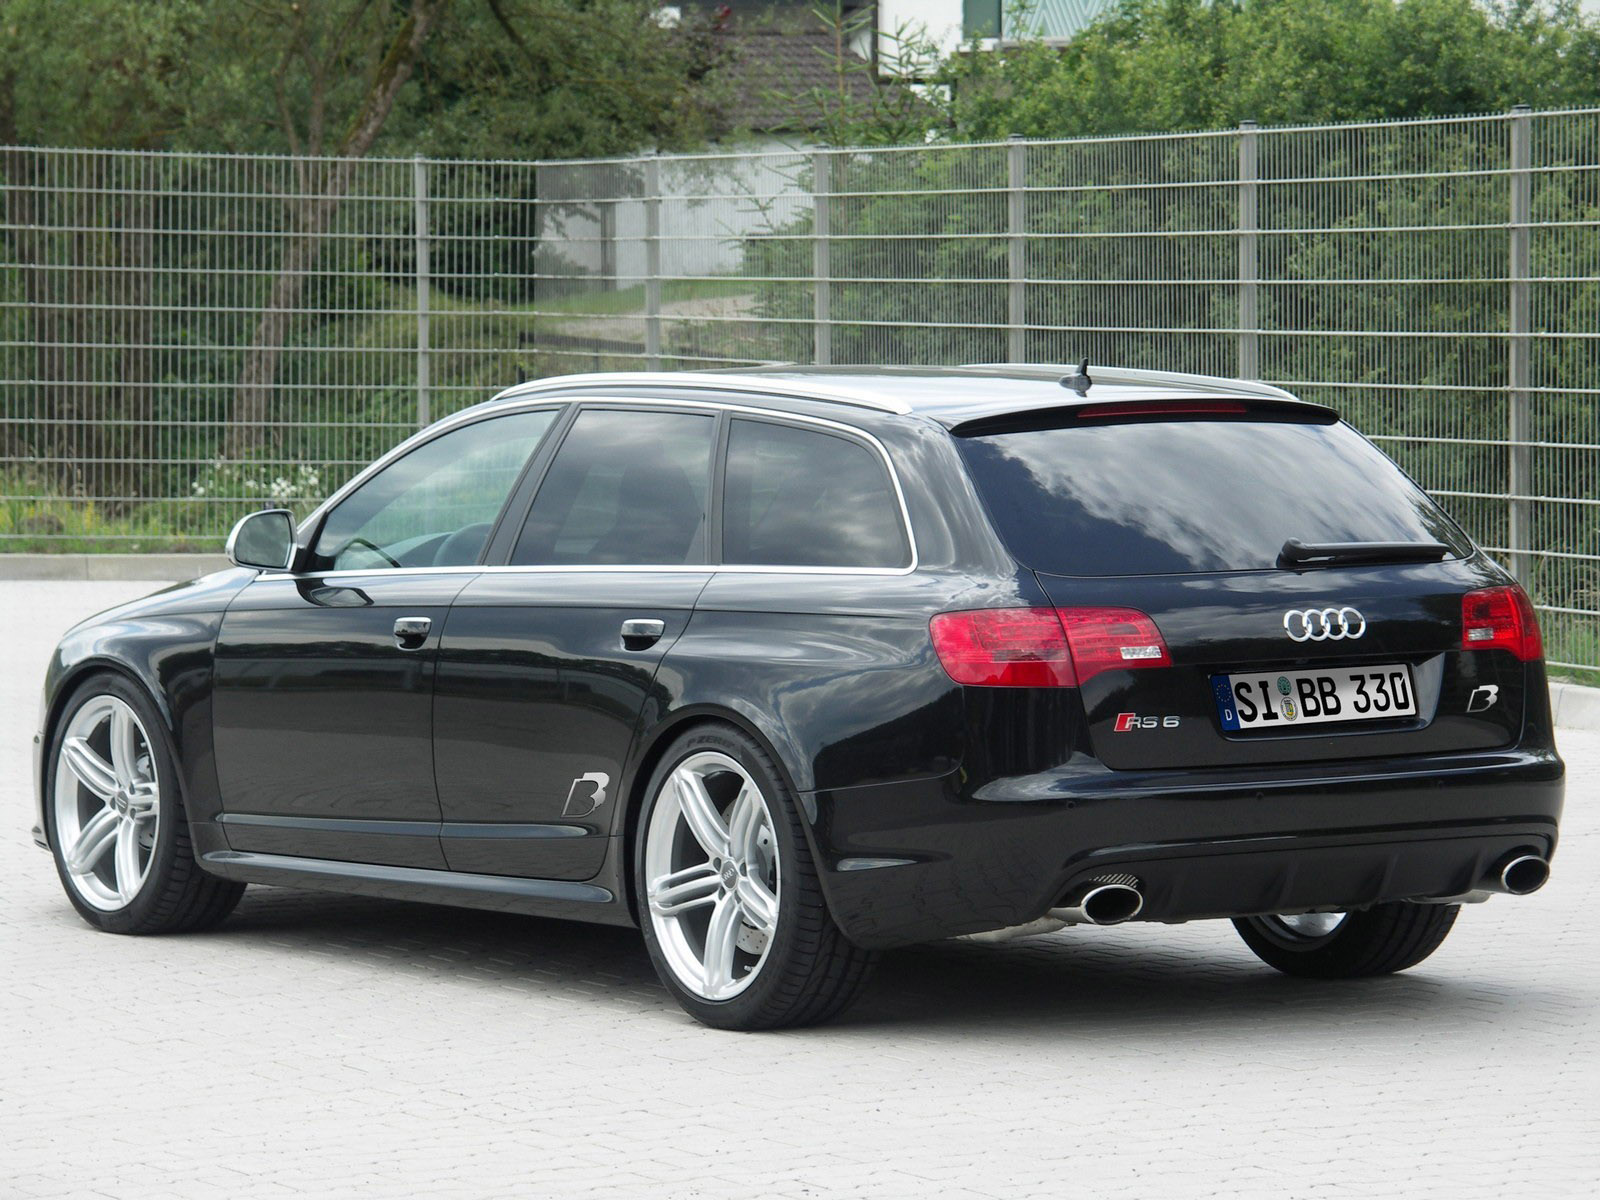 b b audi rs6 avant 4f c6 2008 b b audi rs6 avant 4f c6. Black Bedroom Furniture Sets. Home Design Ideas